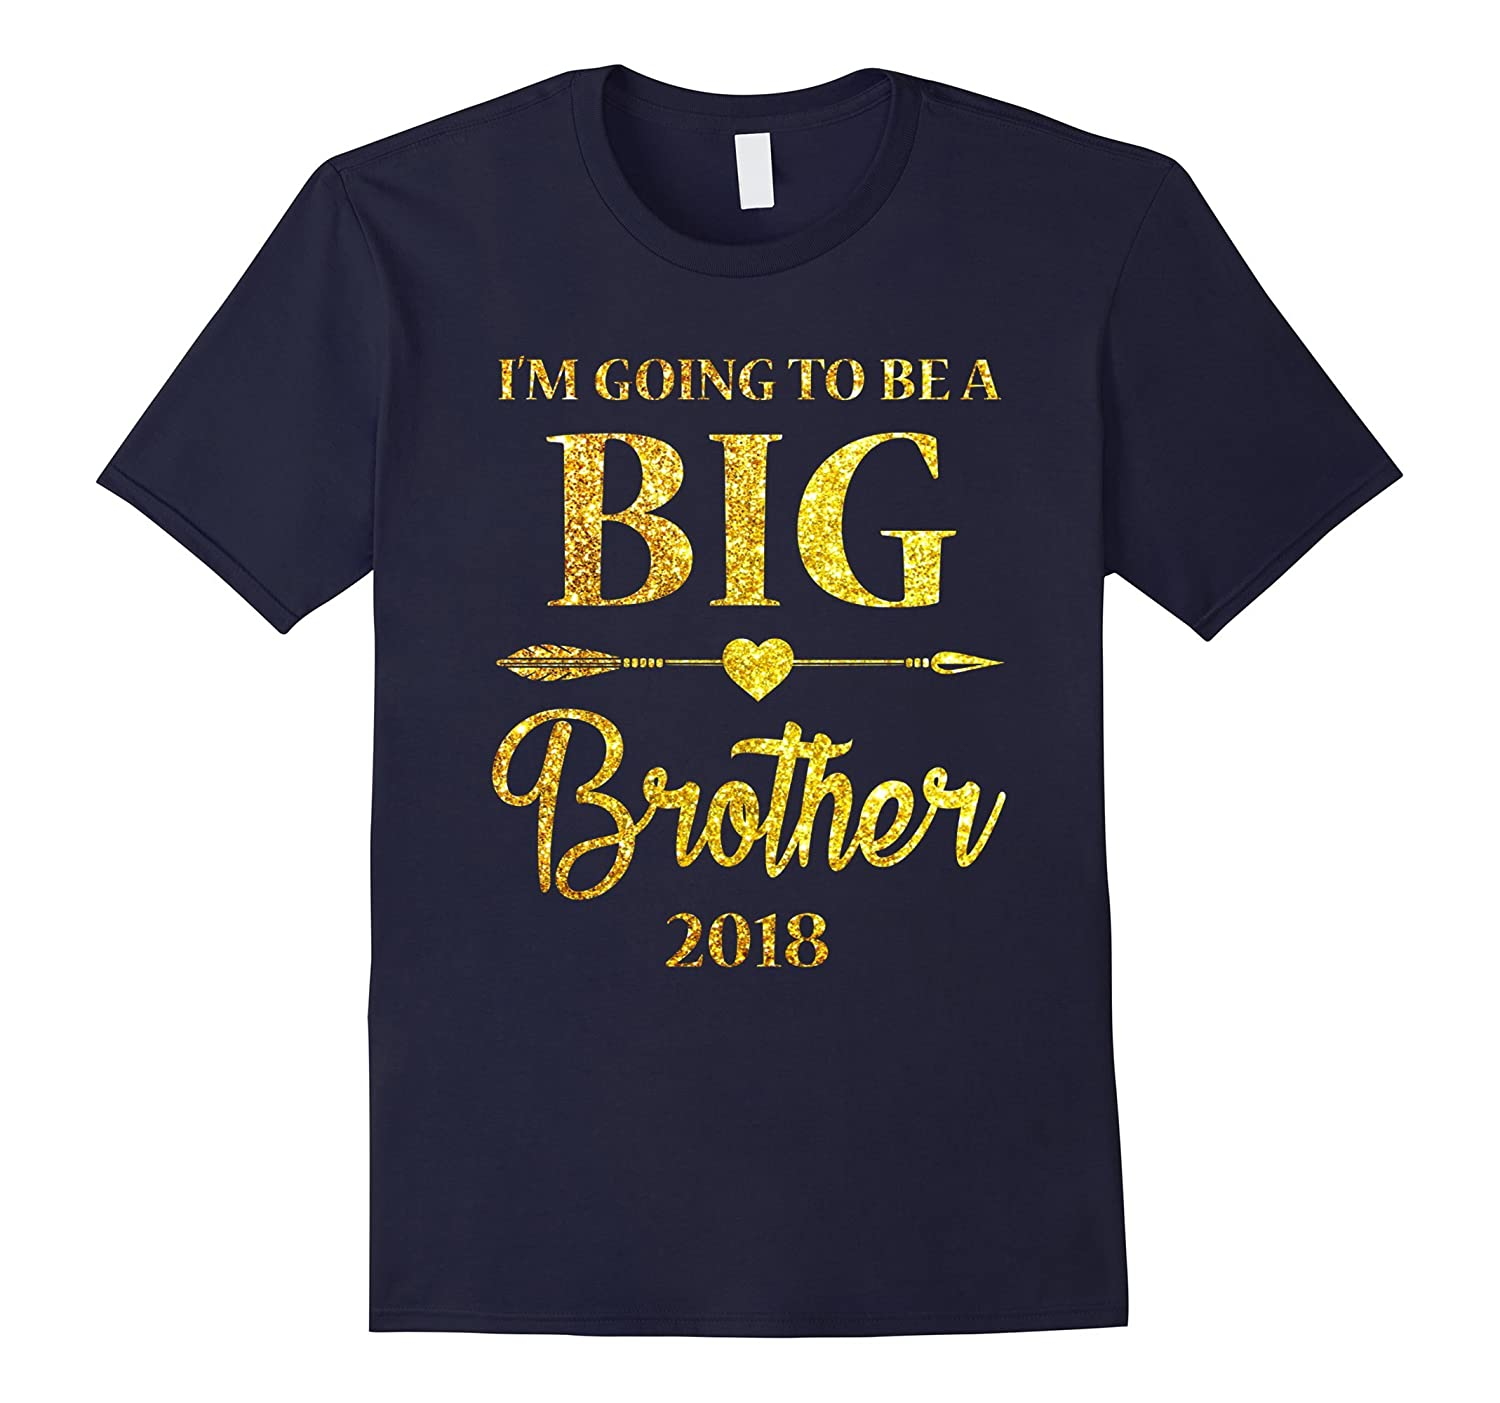 I'm going to be a big brother est 2018-Art